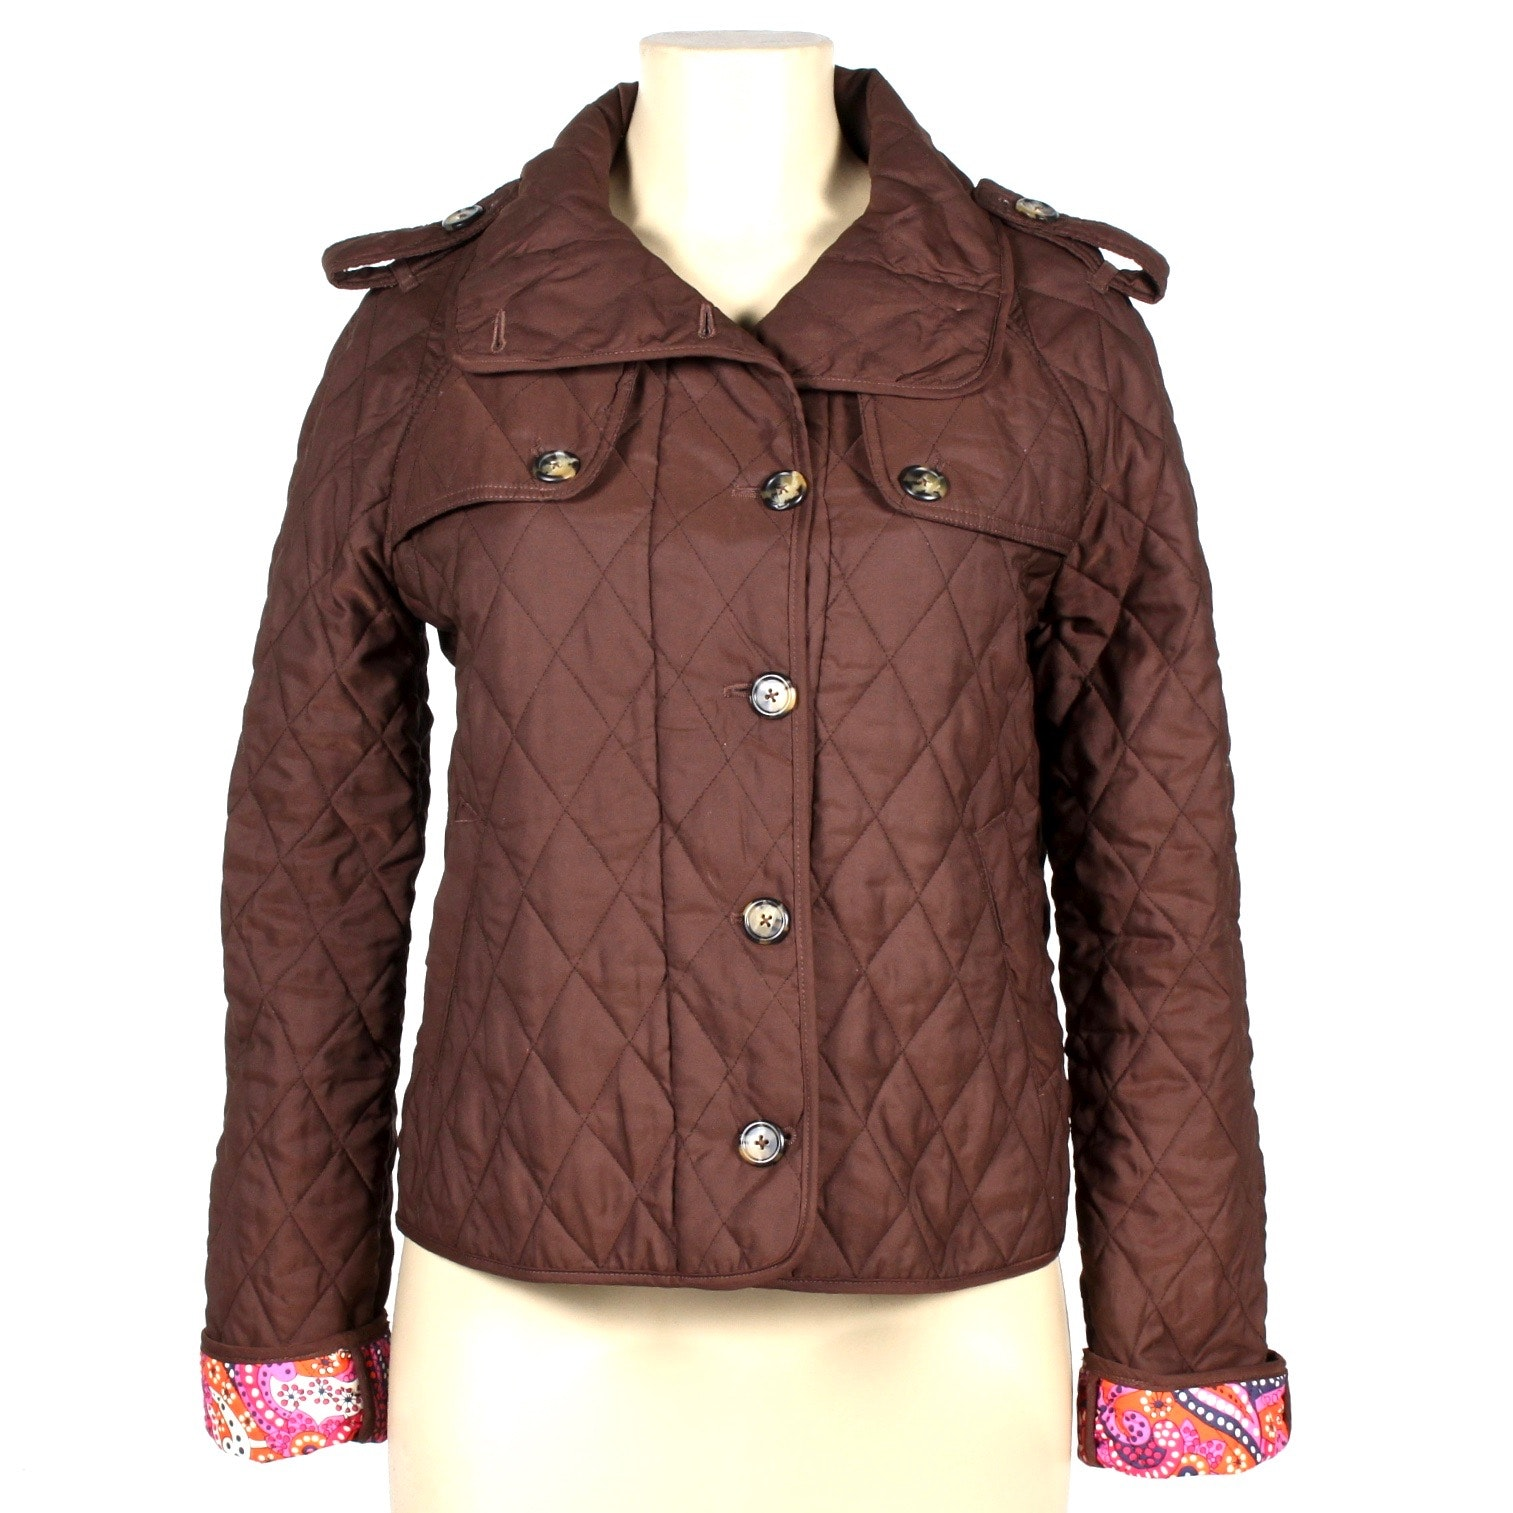 Lilly Pulitzer Brown Quilted Jacket